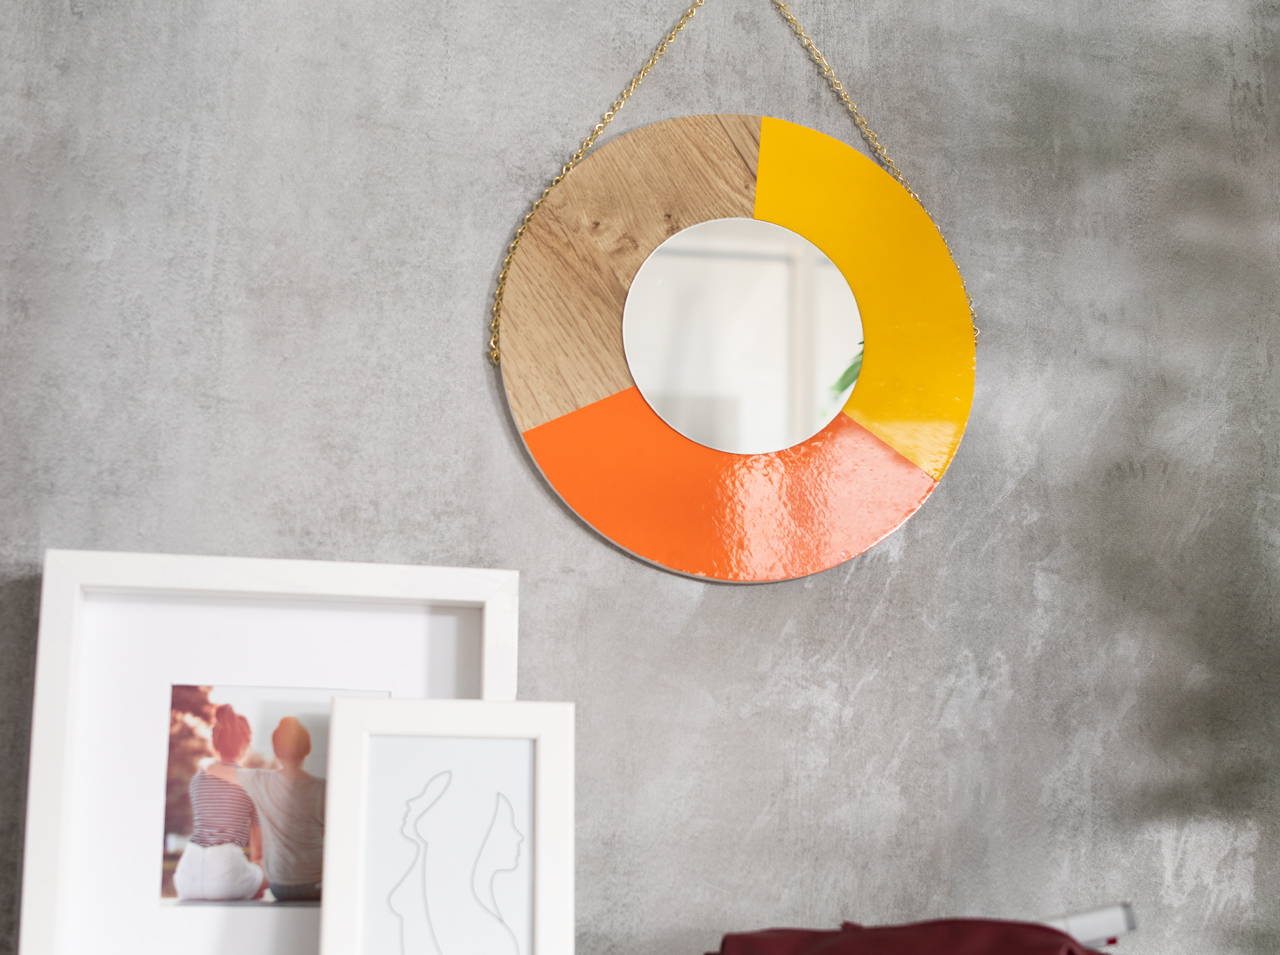 Round DIY wall mirror in color combinations made from adhesive film, hung on a chain